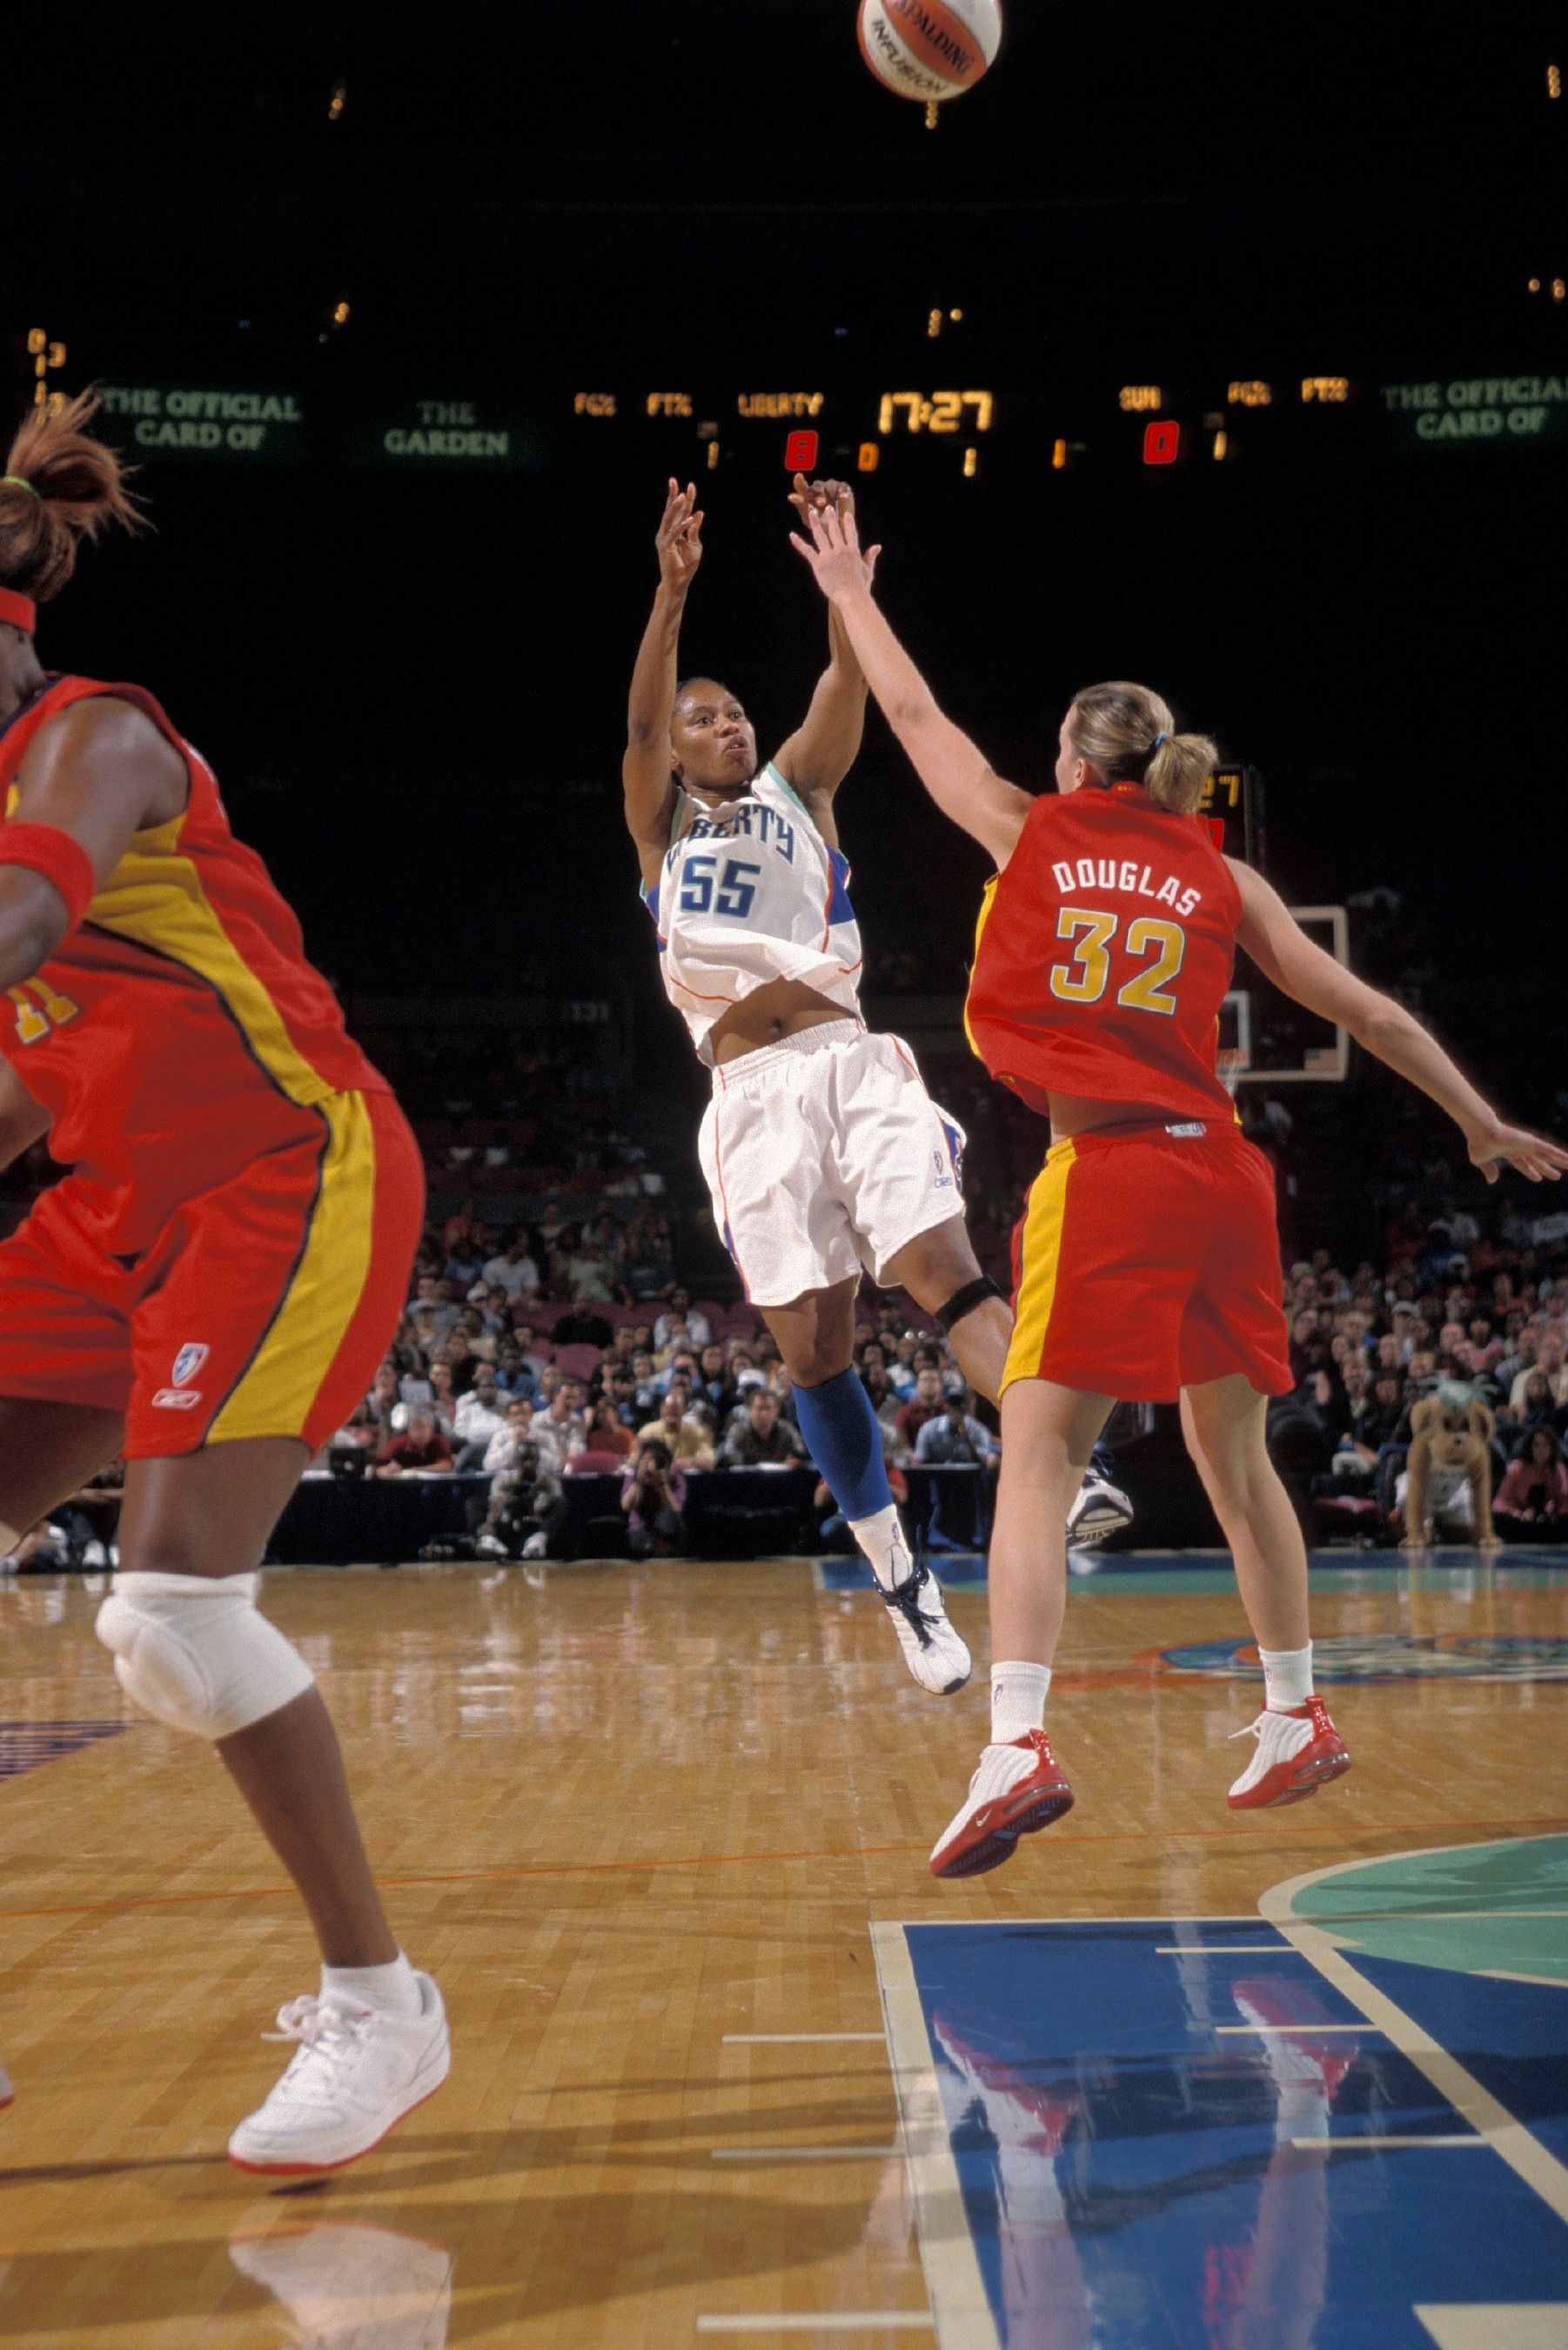 7/1/03 Liberty v. Sun Vickie Johnson